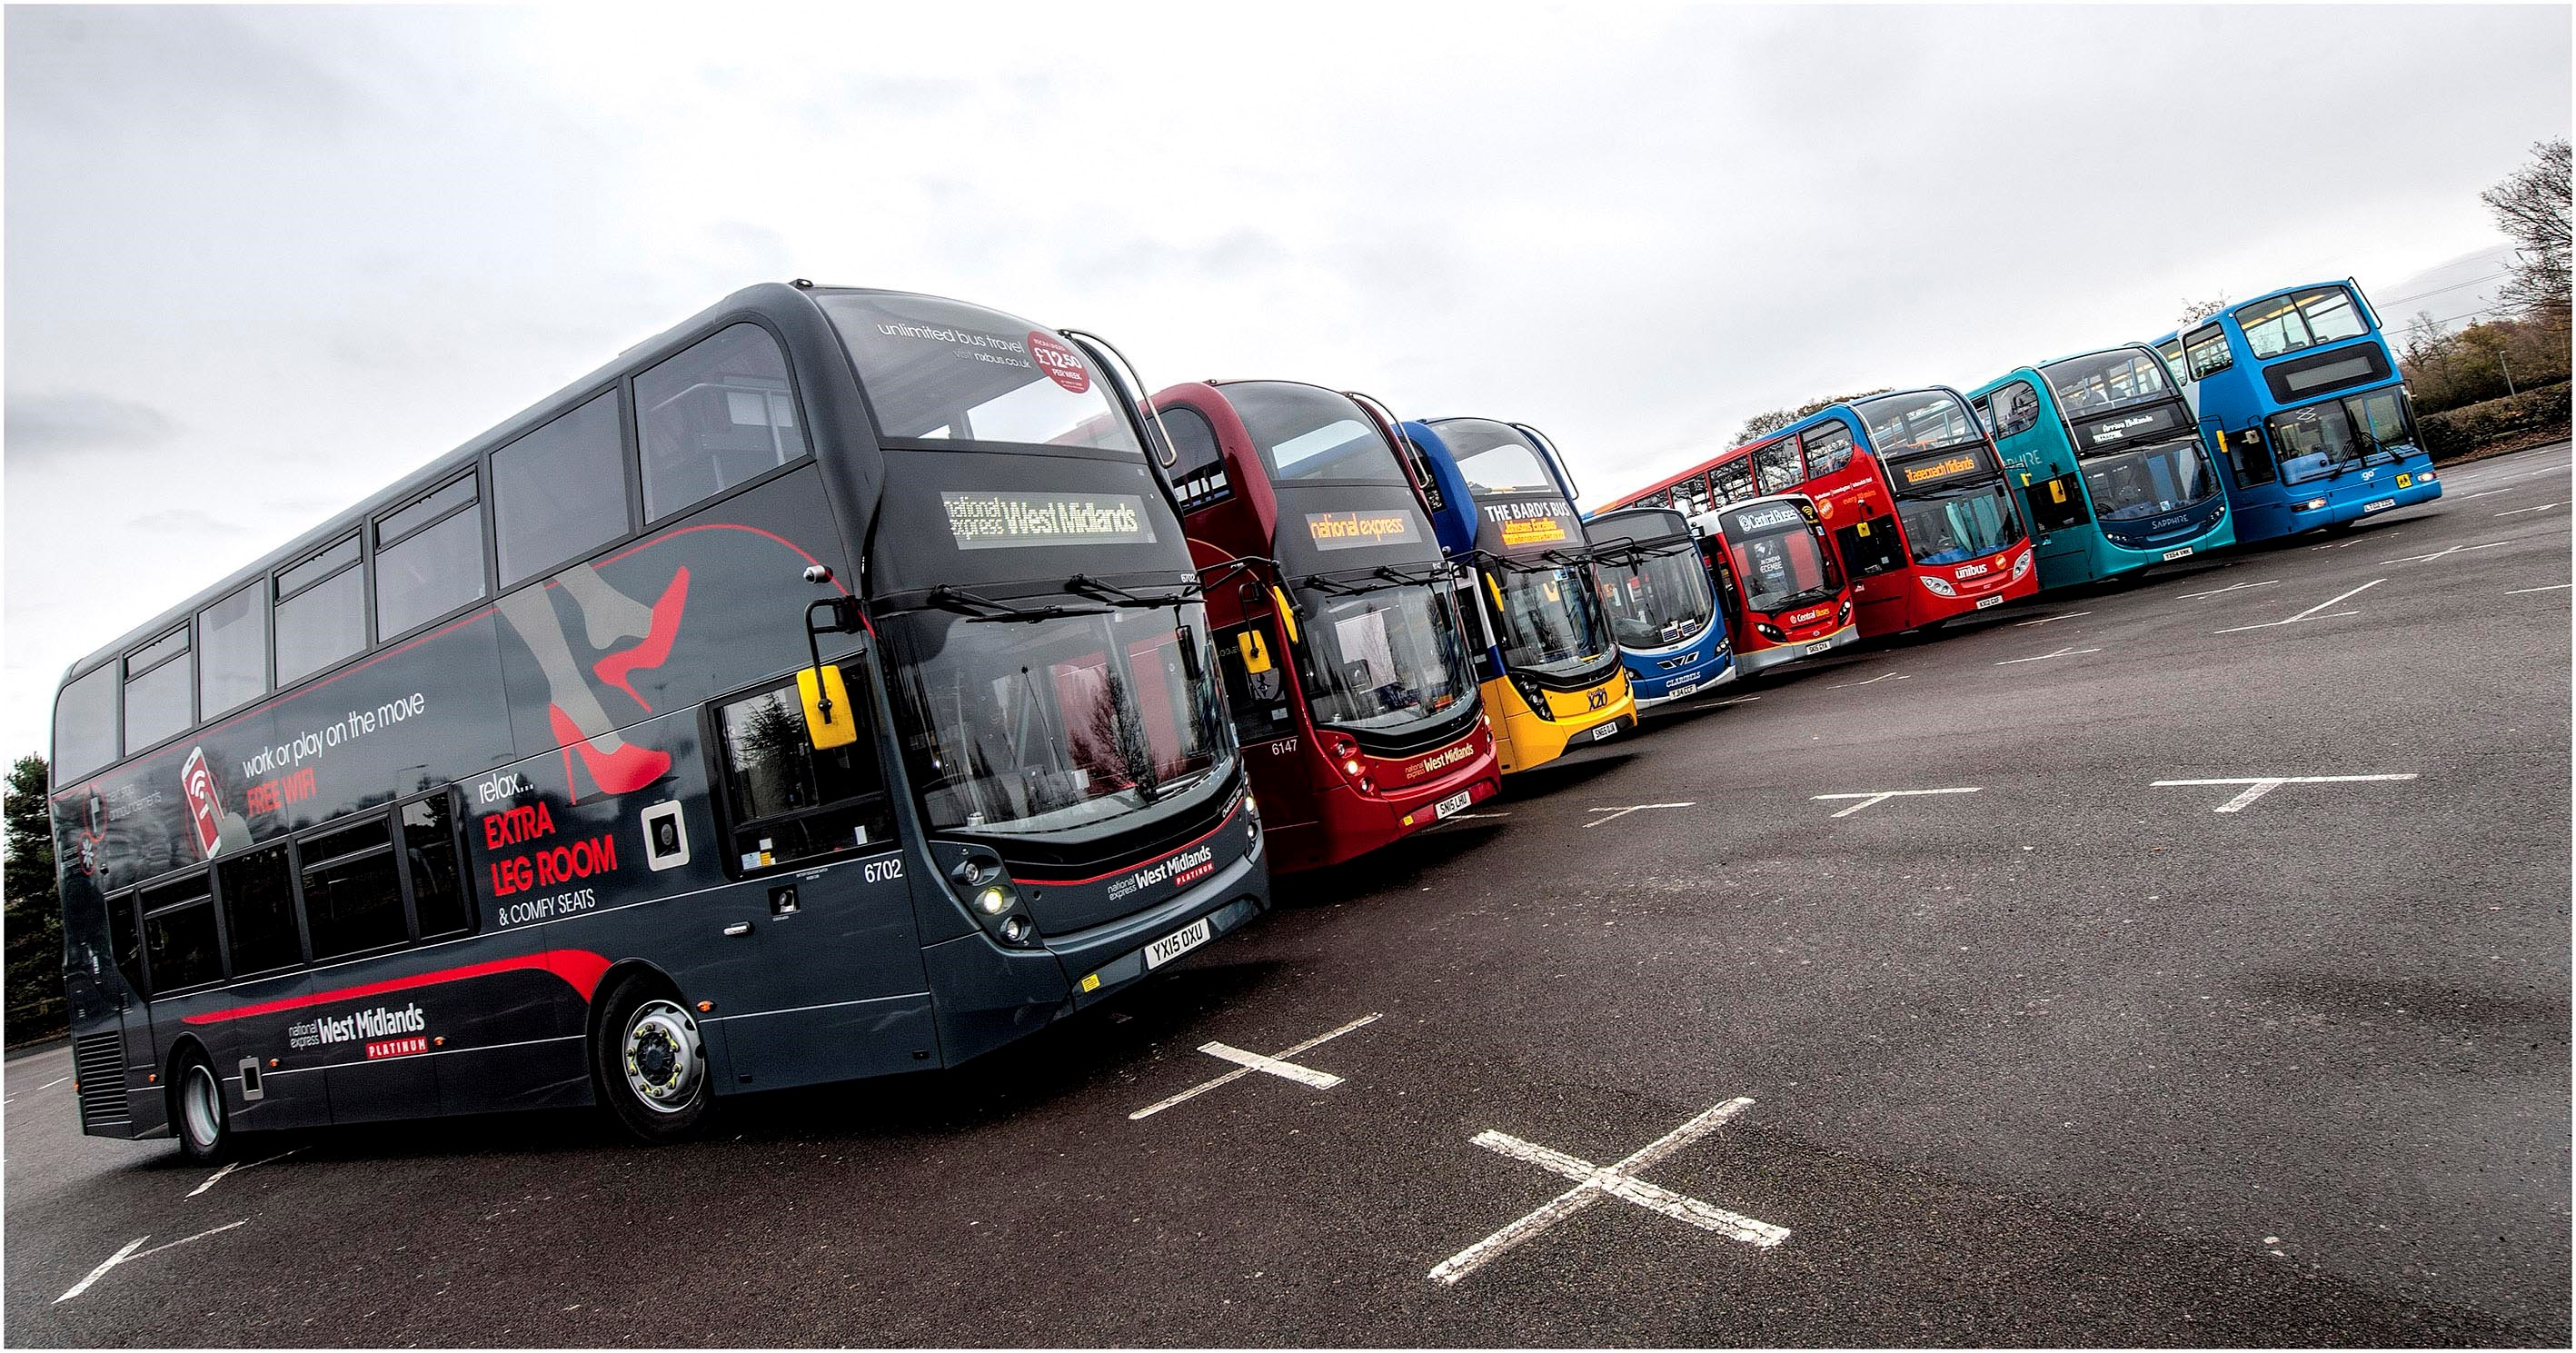 Bus passenger satisfaction riding high in the West Midlands